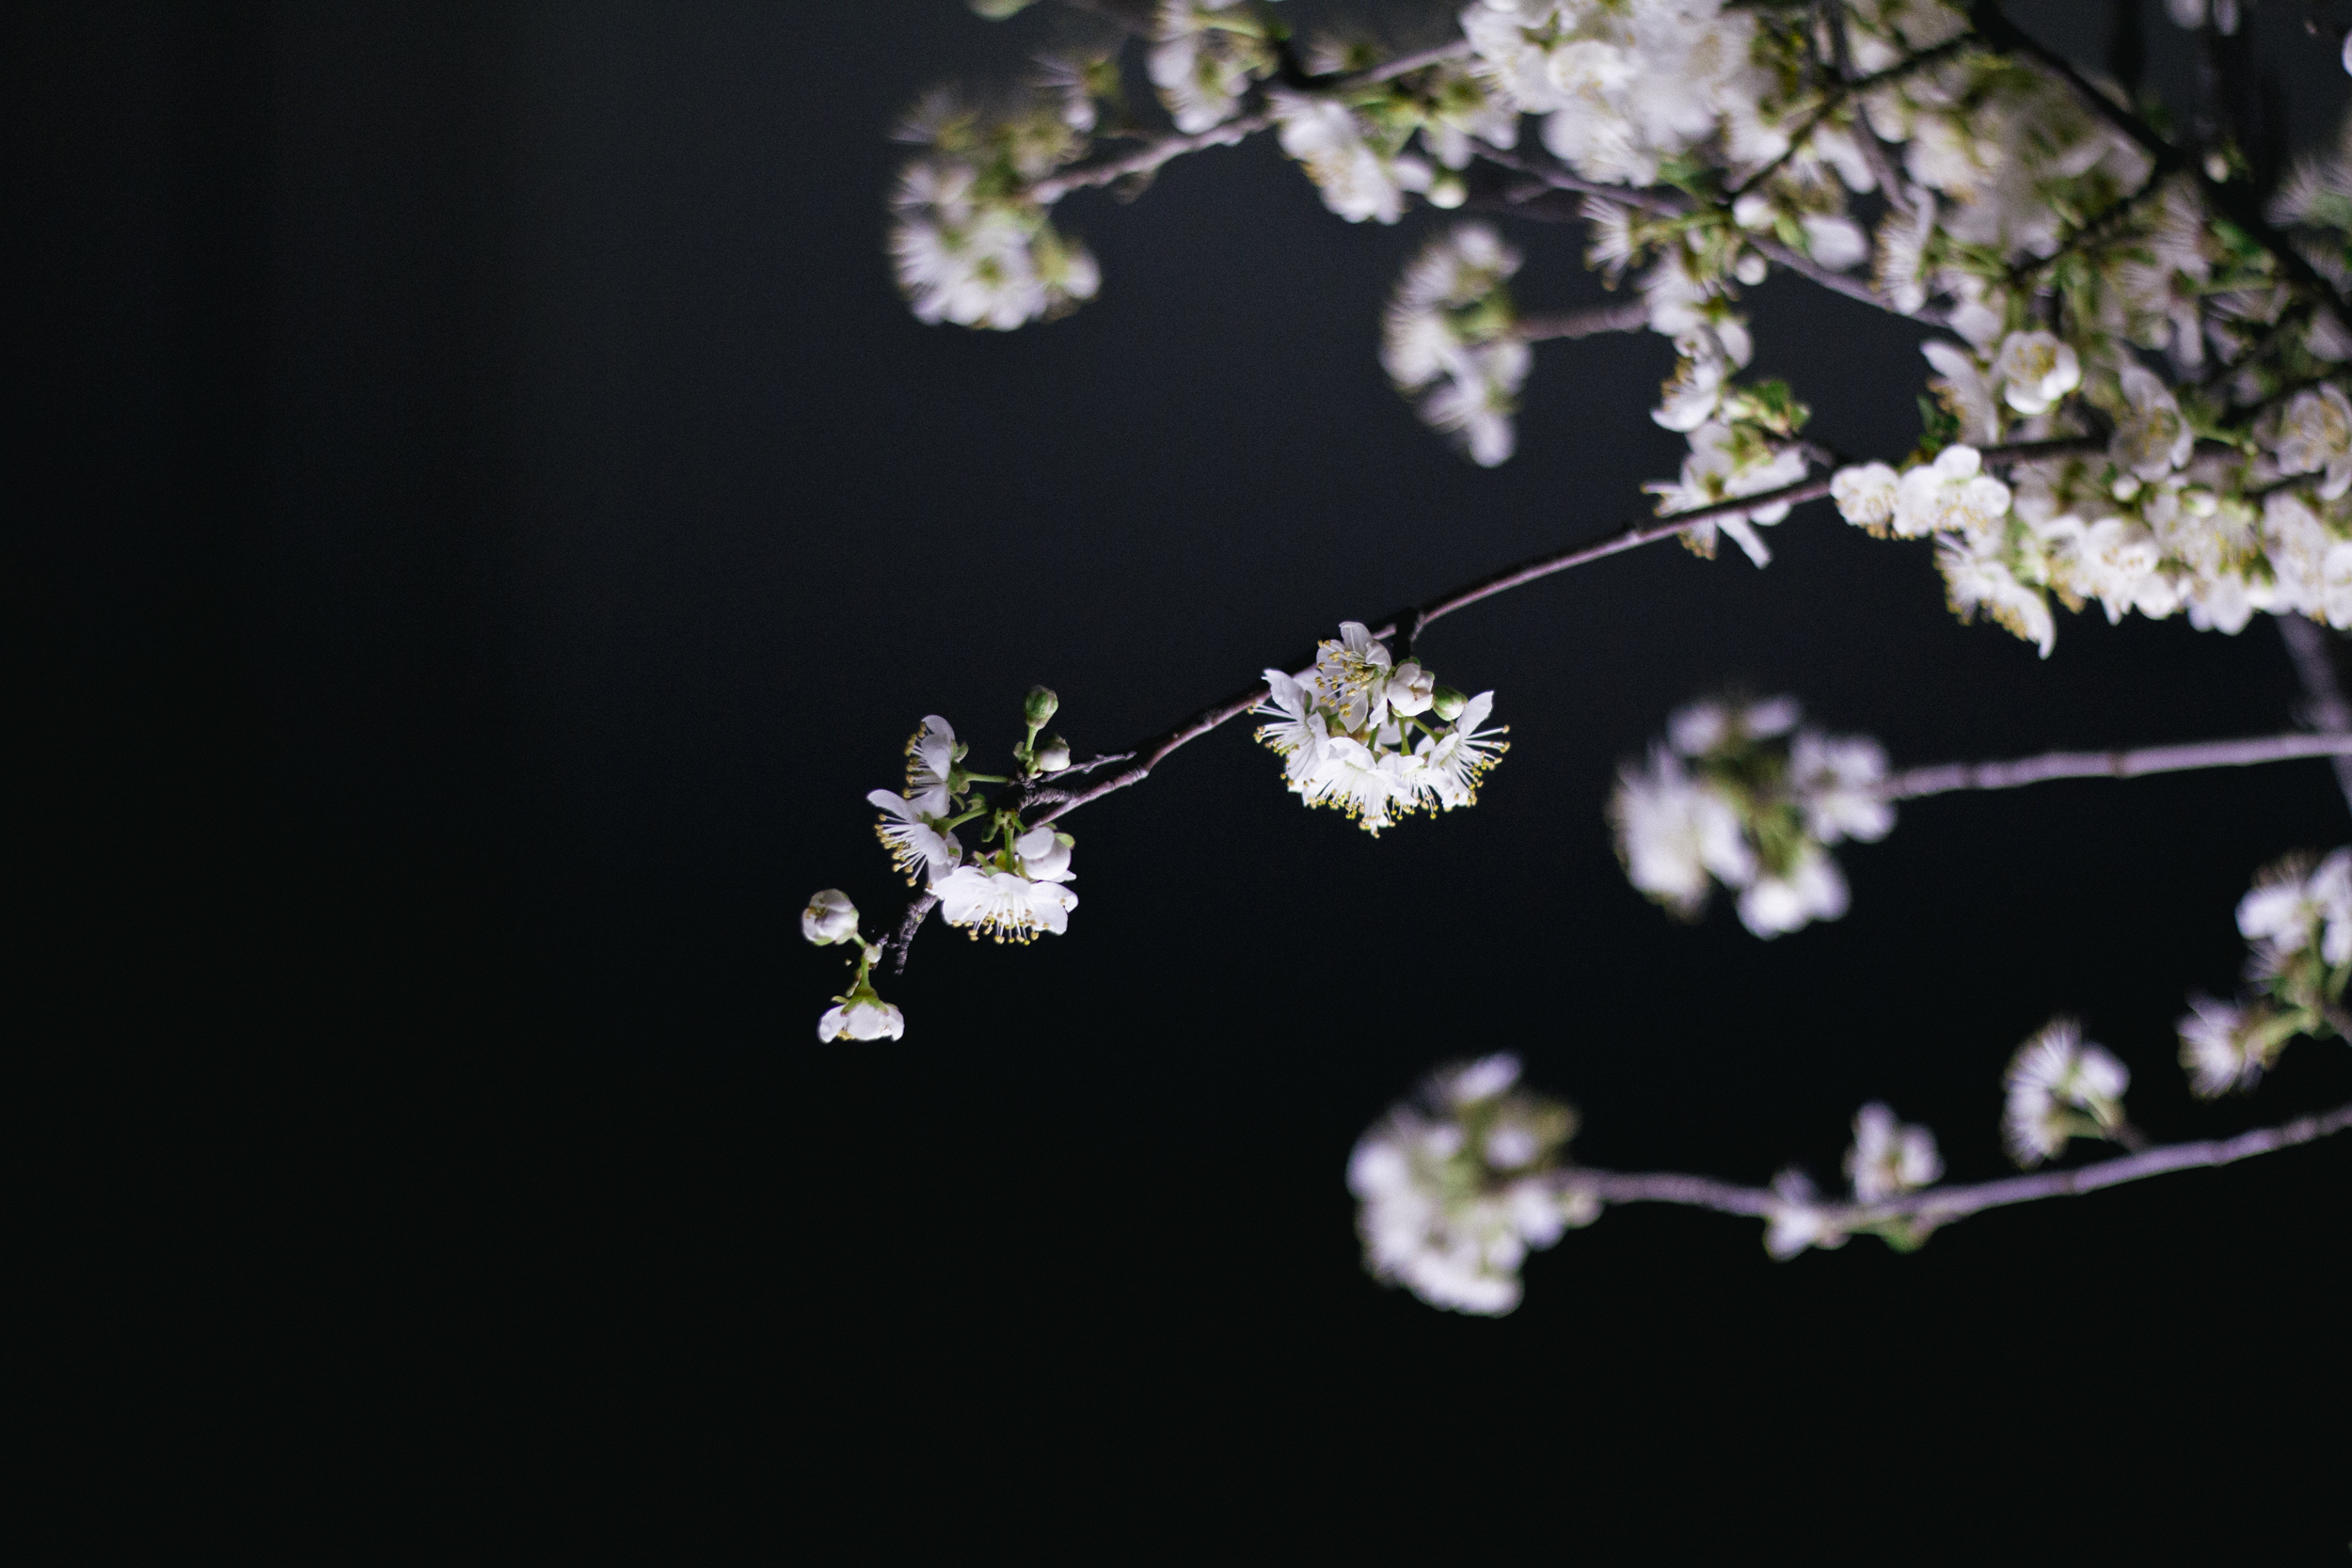 Janelle.grace.com - Floral photography with lightbox-5.jpg